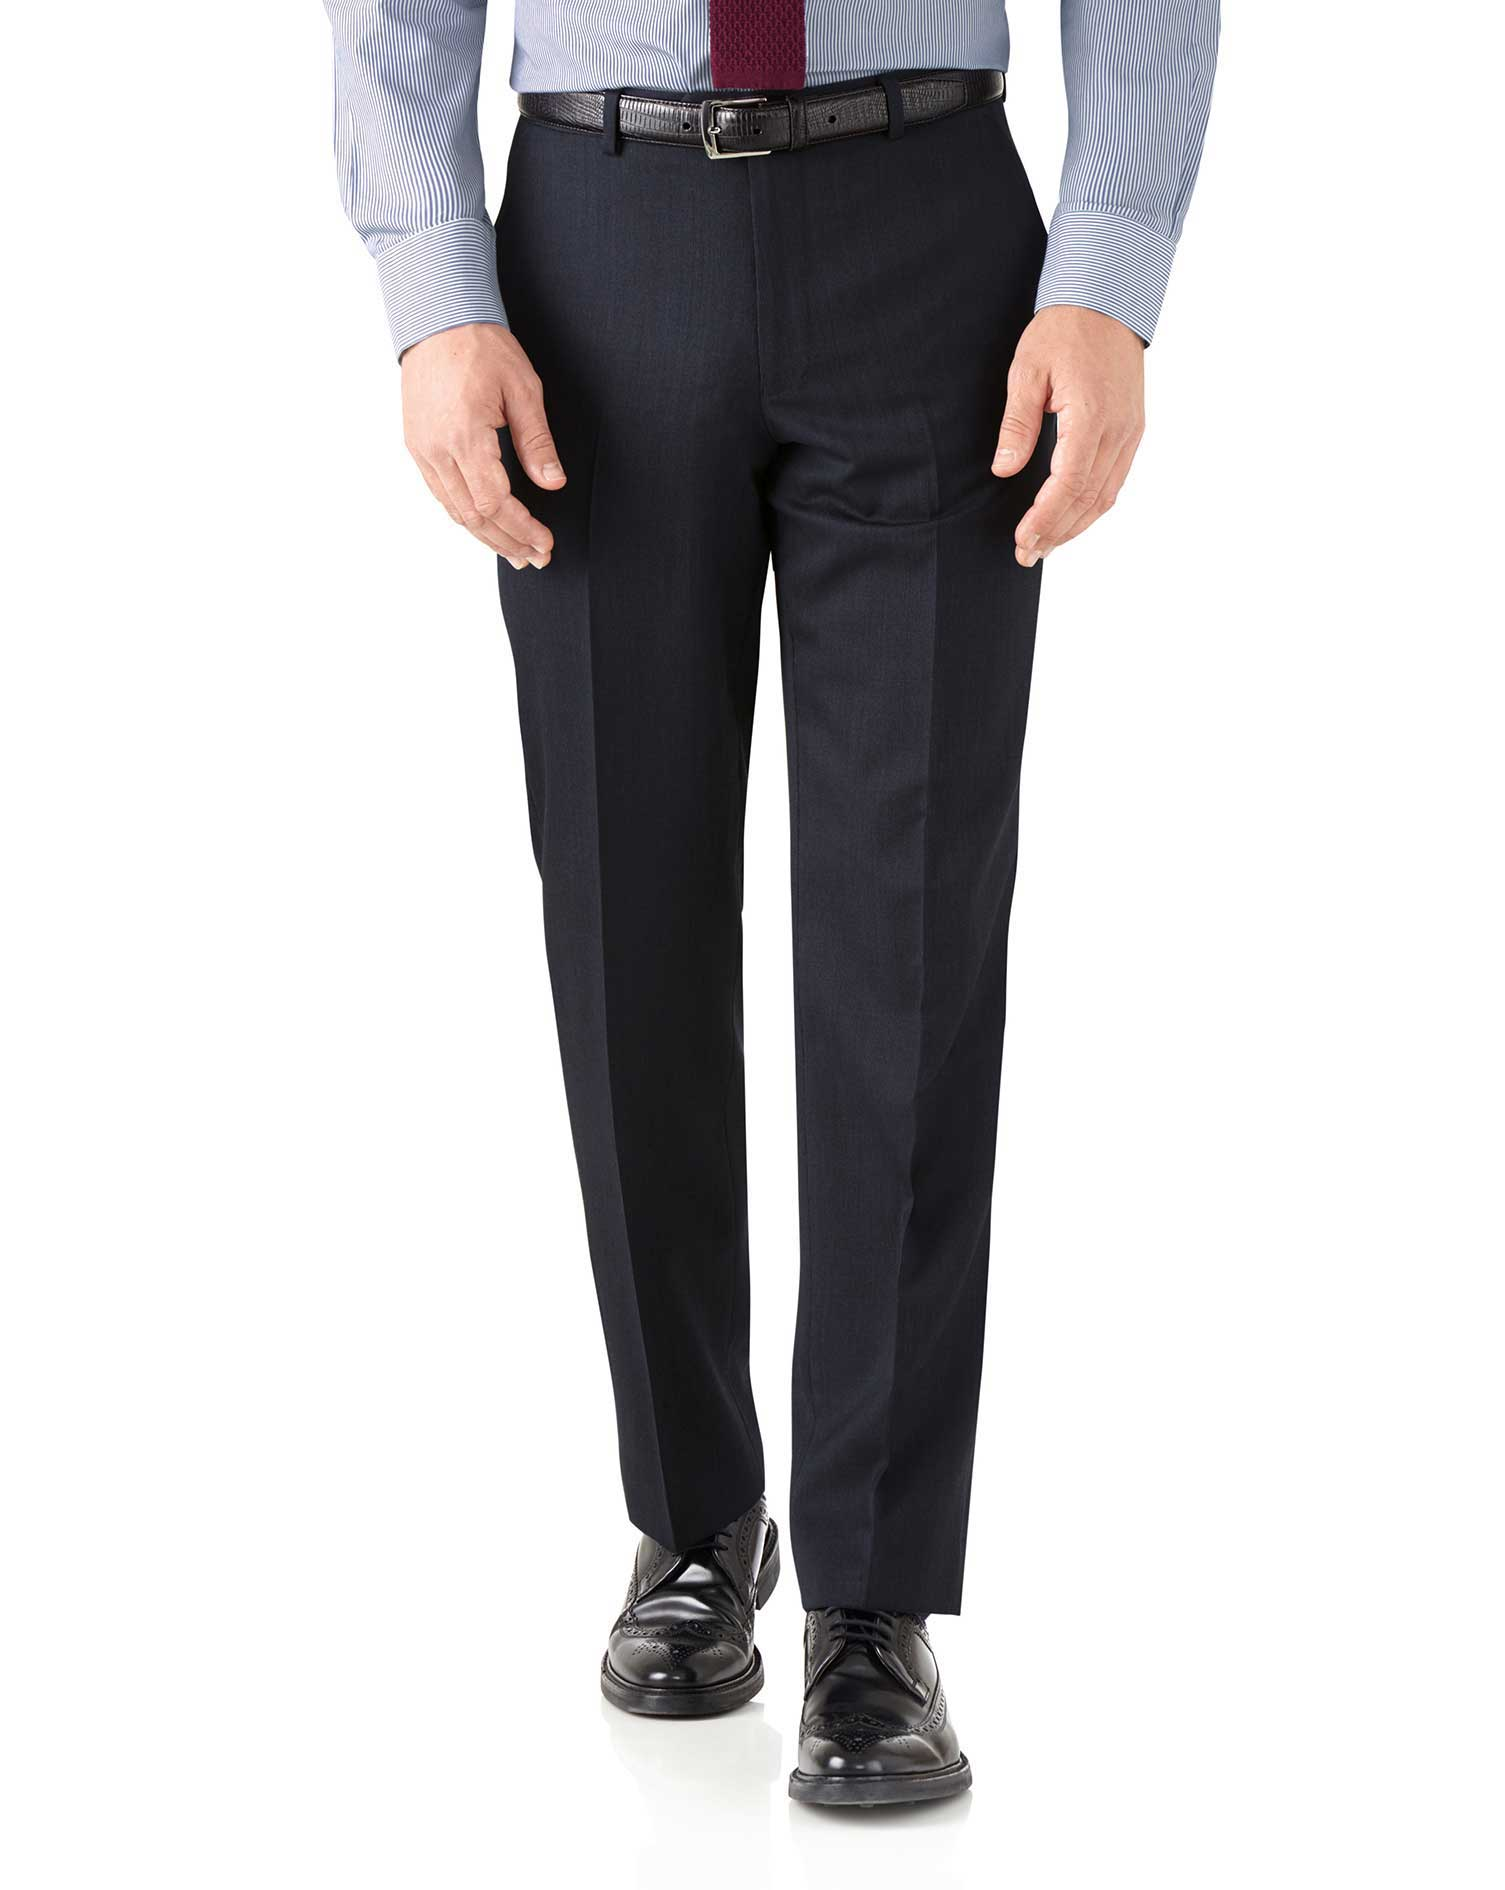 Navy Classic Fit Hairline Business Suit Trousers Size W42 L34 by Charles Tyrwhitt